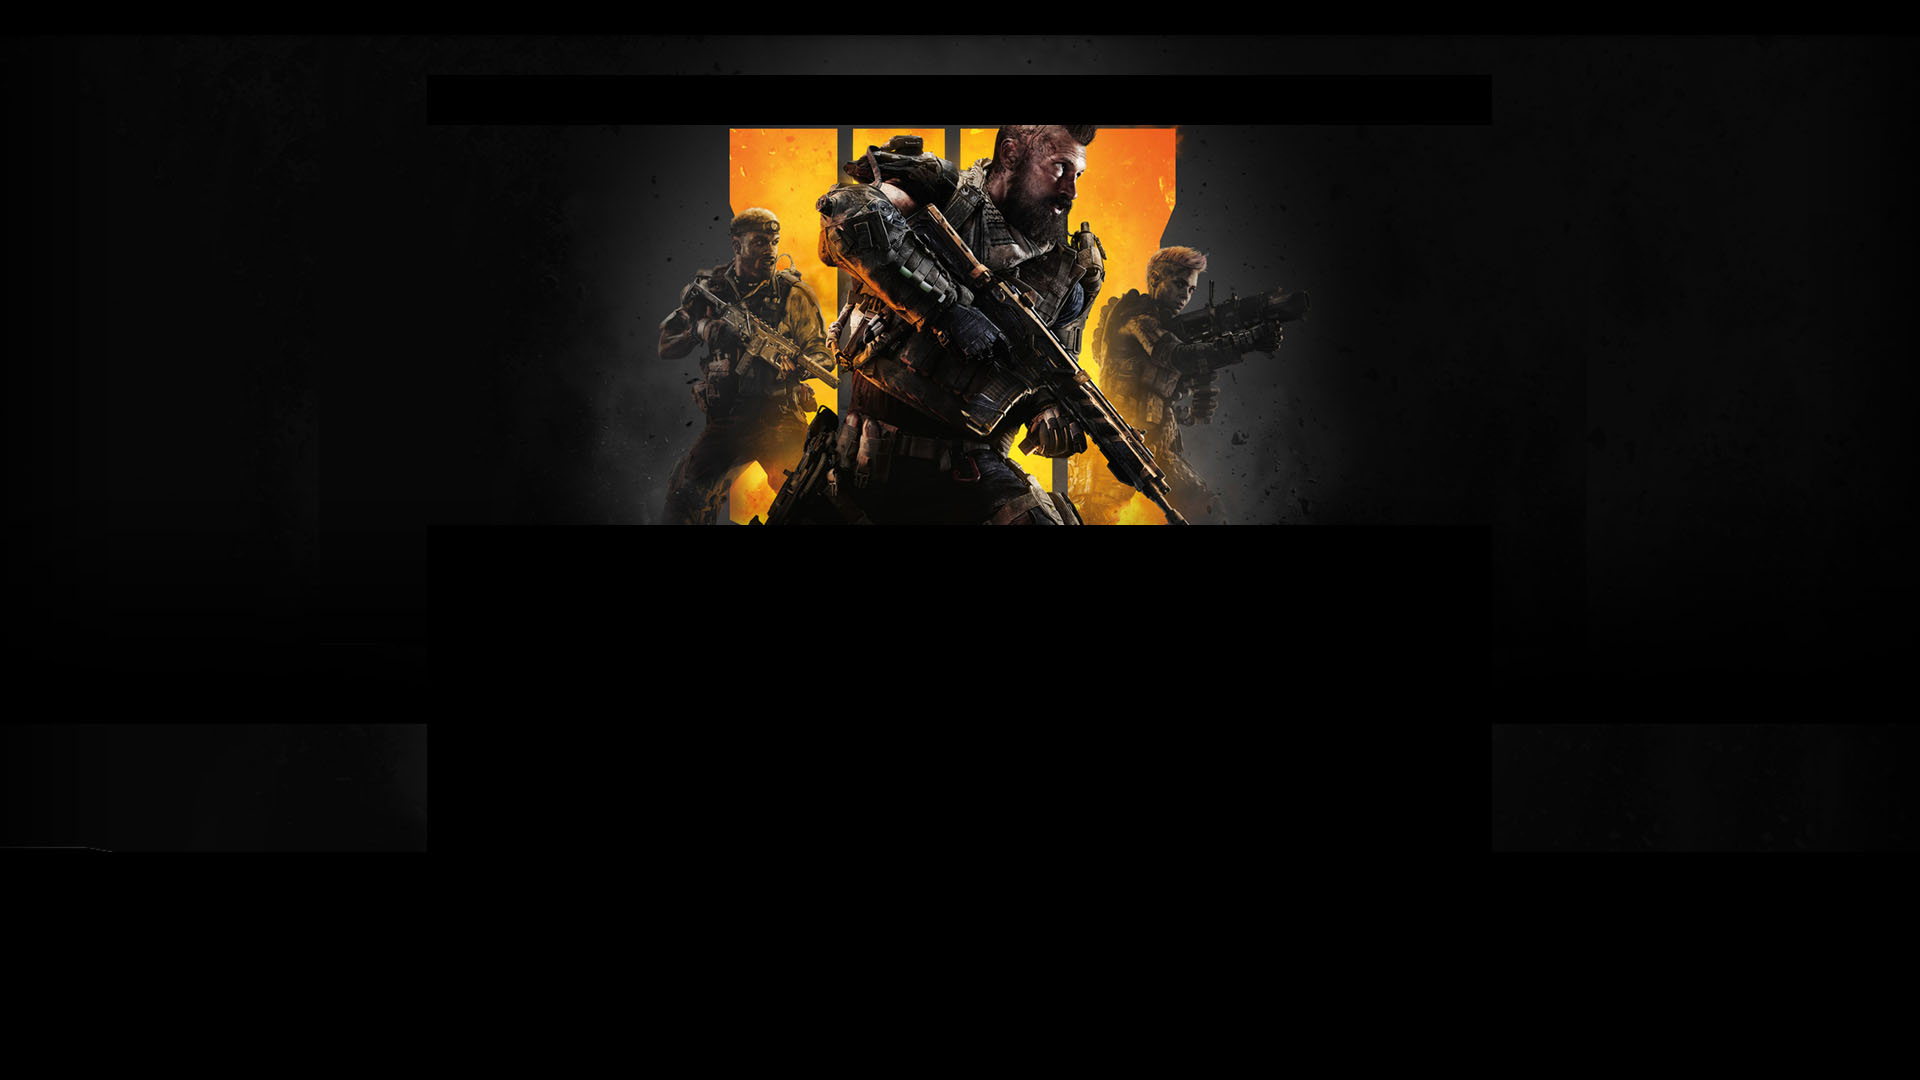 Black Ops 4 [PC/PS4] video game